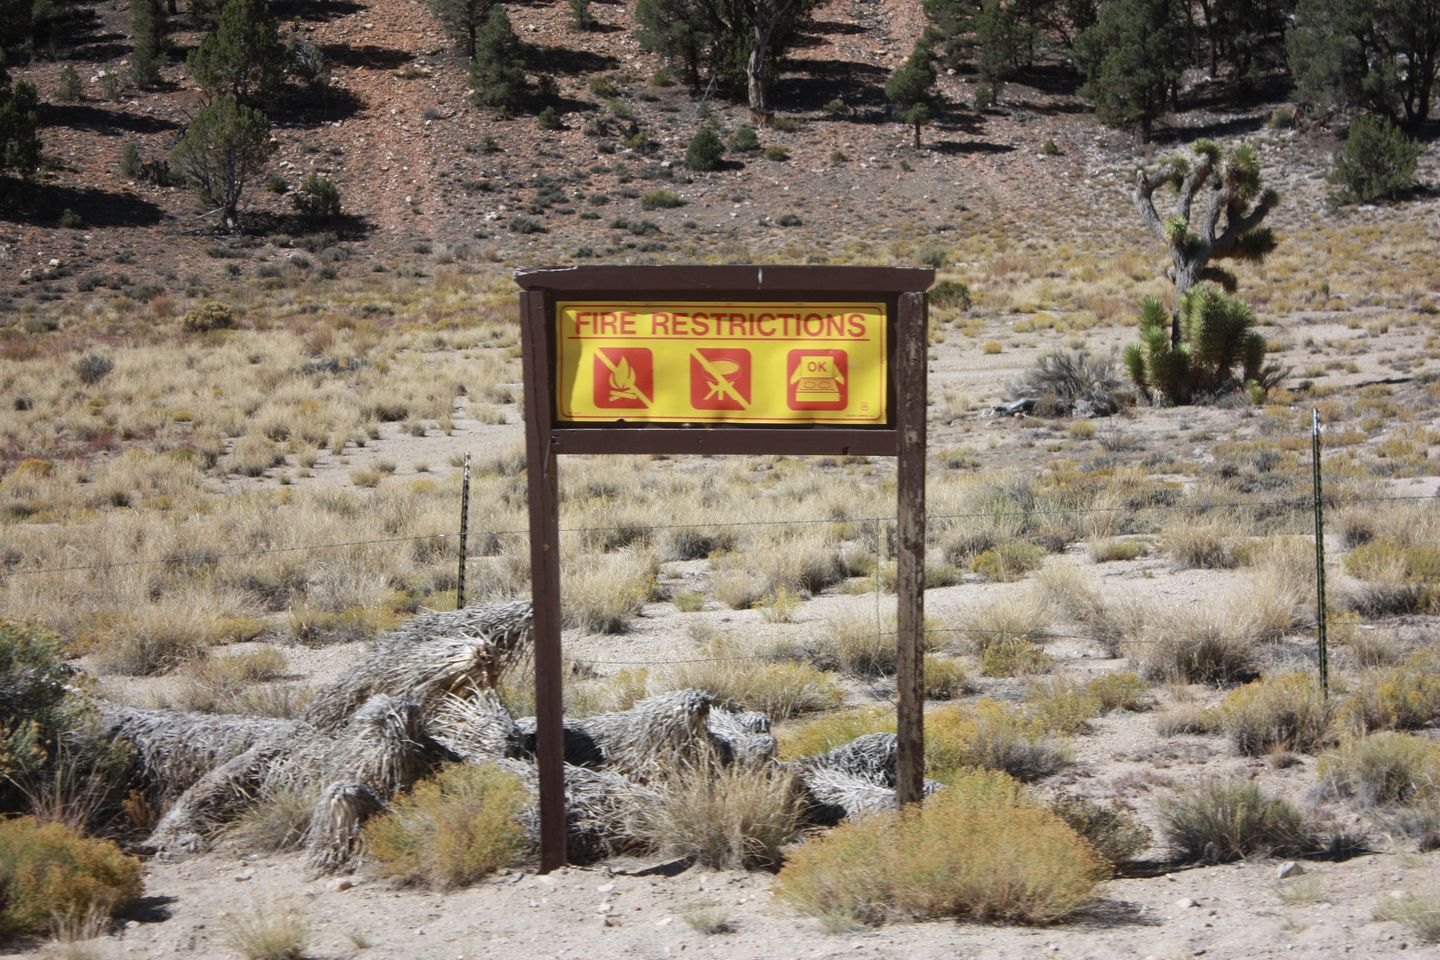 Camping: 2N02 - Burns Canyon